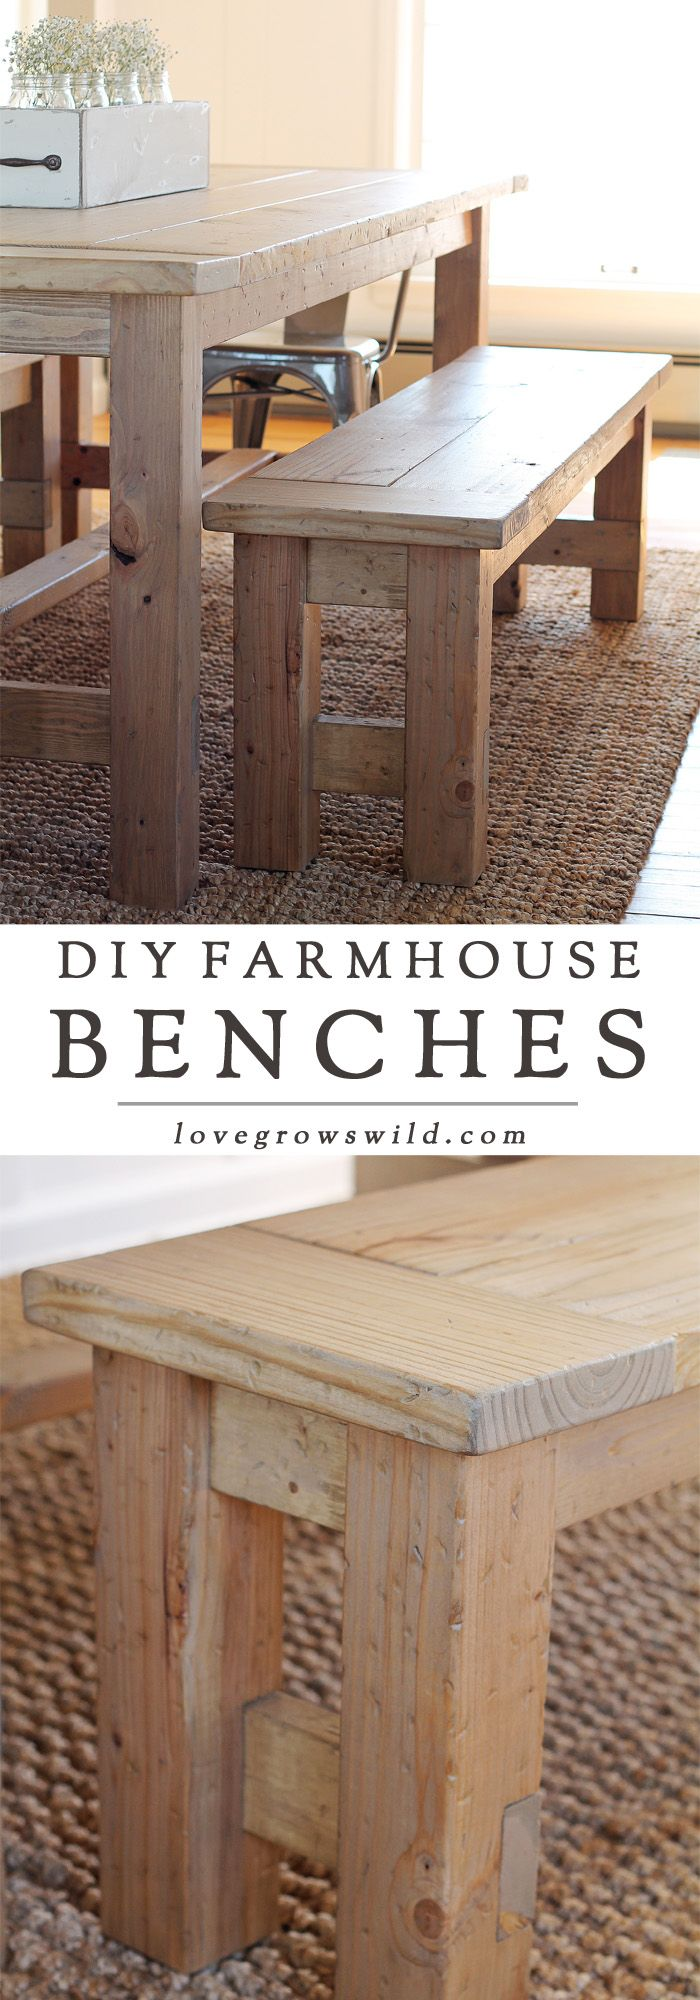 federer jacket sale Learn how to build an easy DIY Farmhouse Bench   perfect for saving space in a small dining room  Details at LoveGrowsWild com